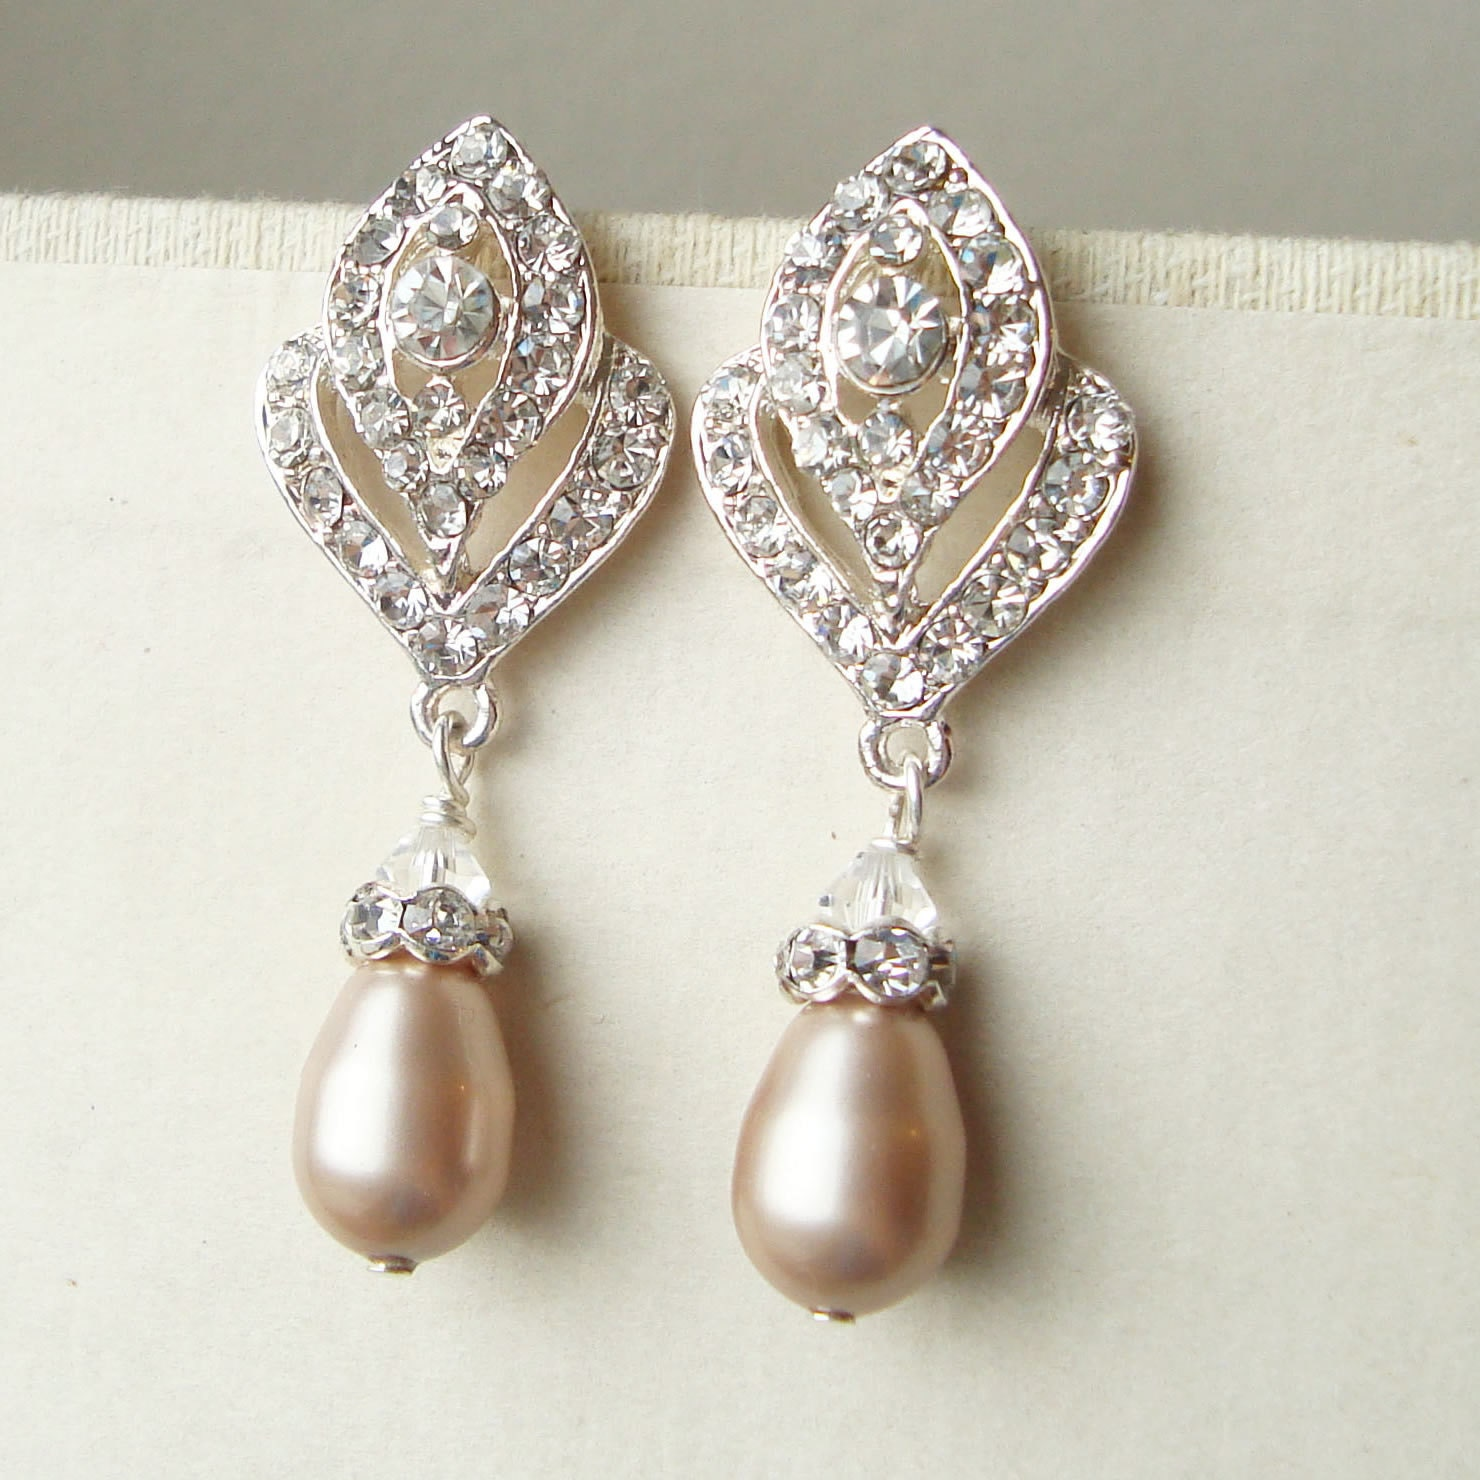 Champagne pearl wedding earrings vintage style by luxedeluxe for Jewelry for champagne wedding dress